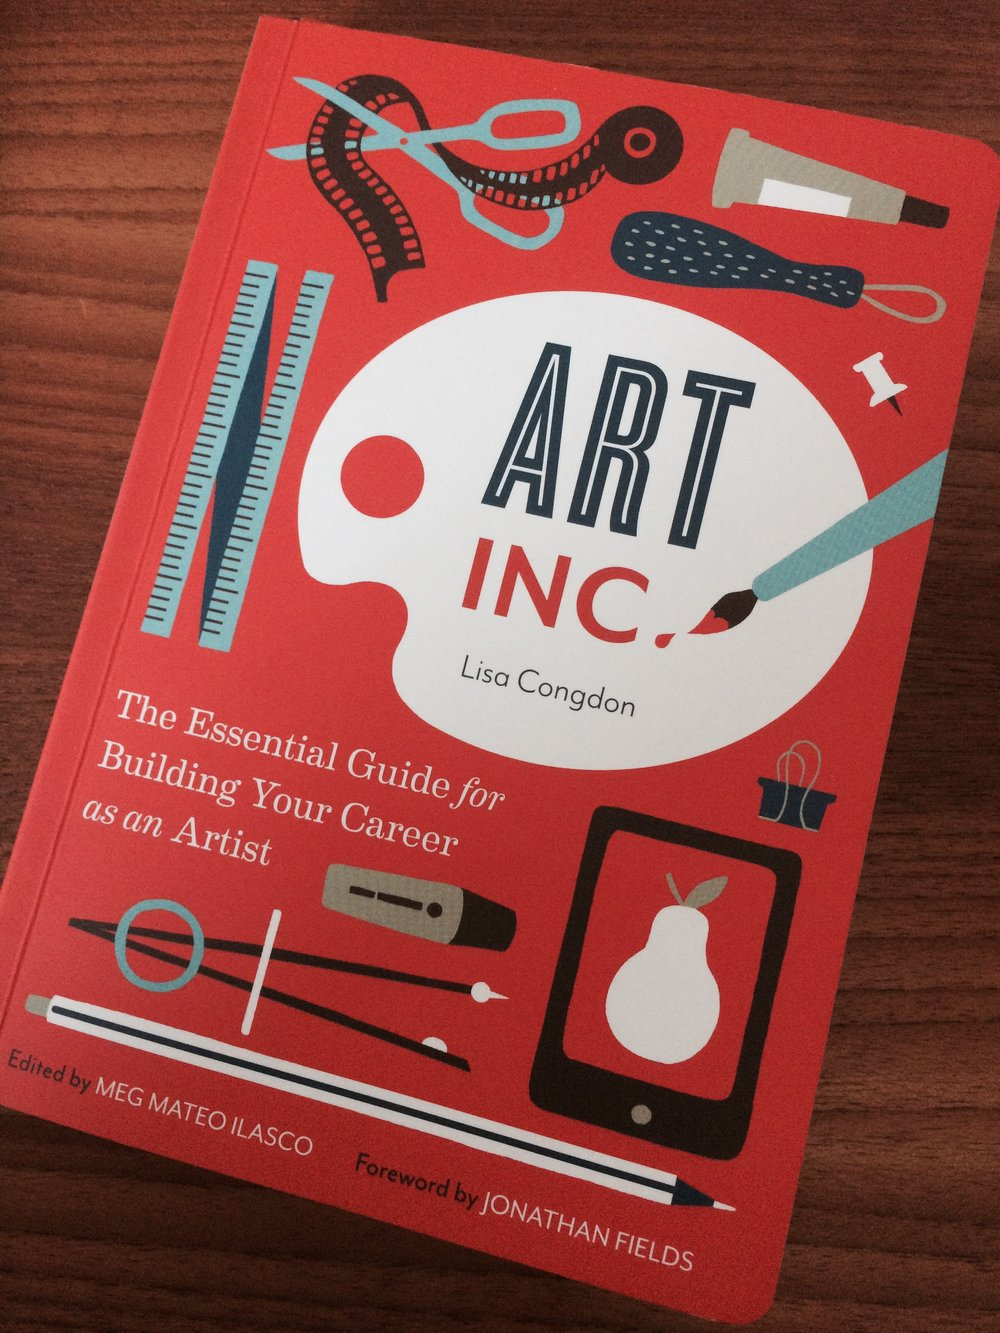 Art Inc. by Lisa Congdon